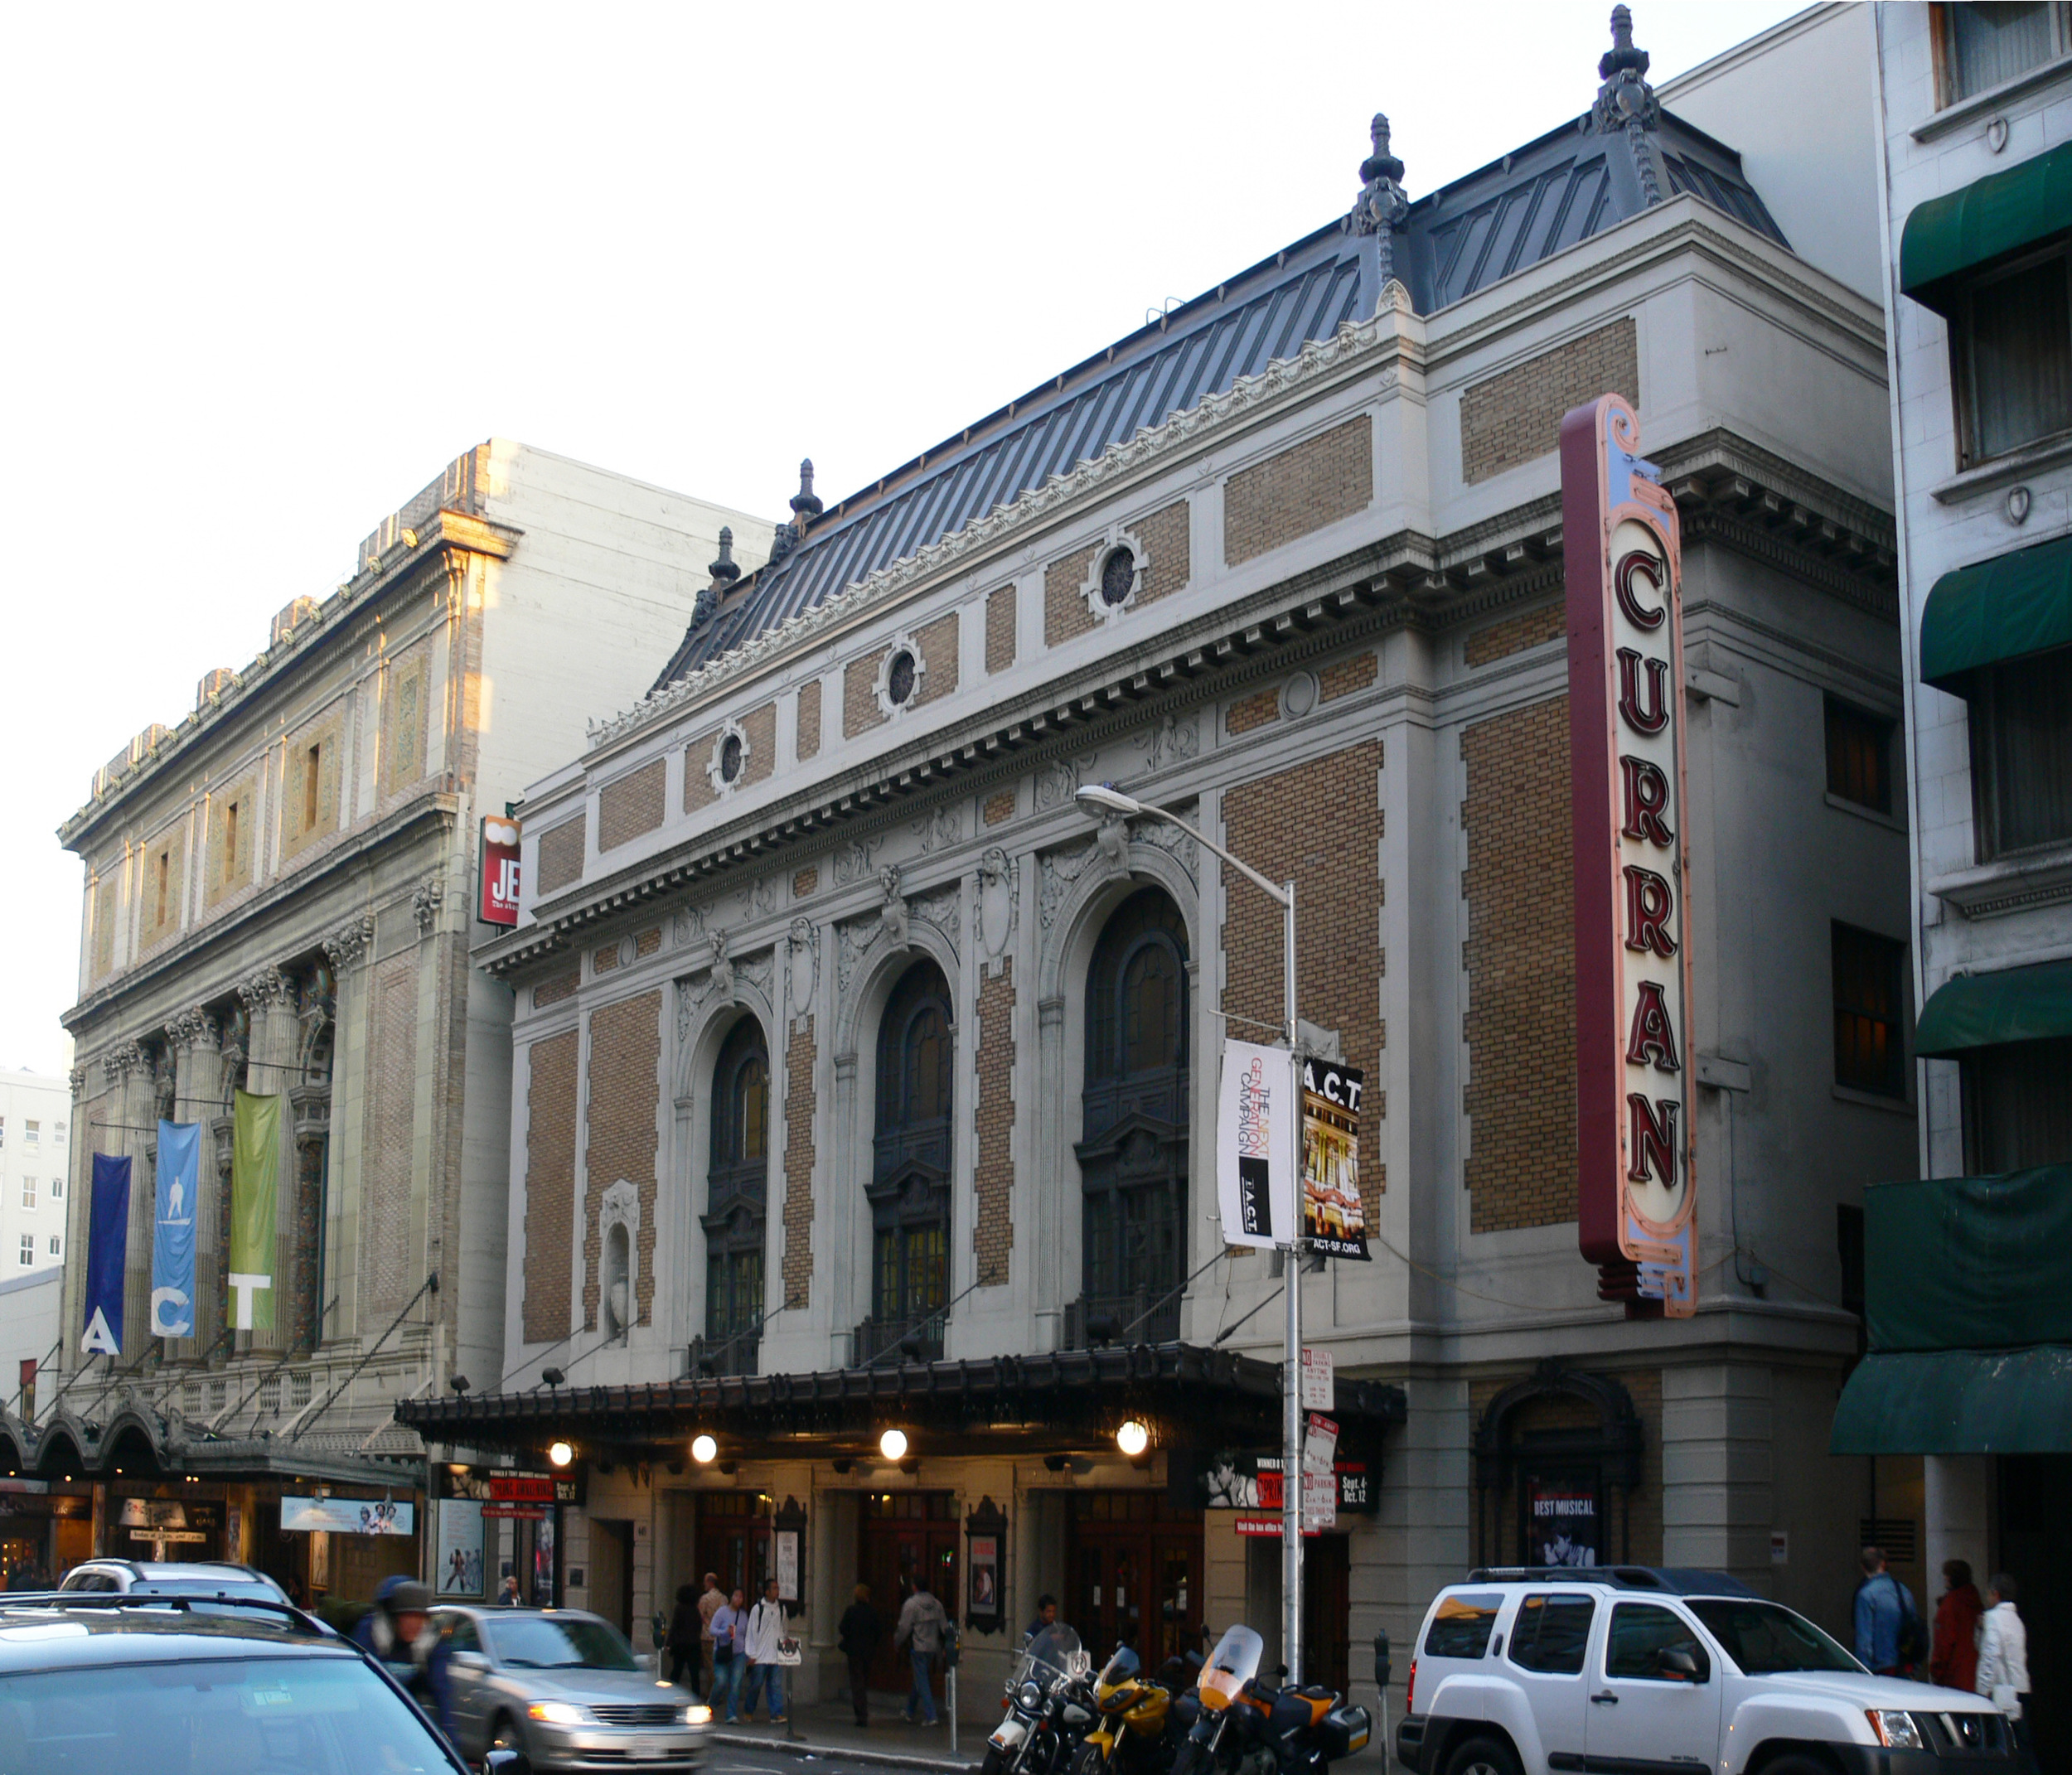 The Curran Theatre shows first-class productions throughout the year.